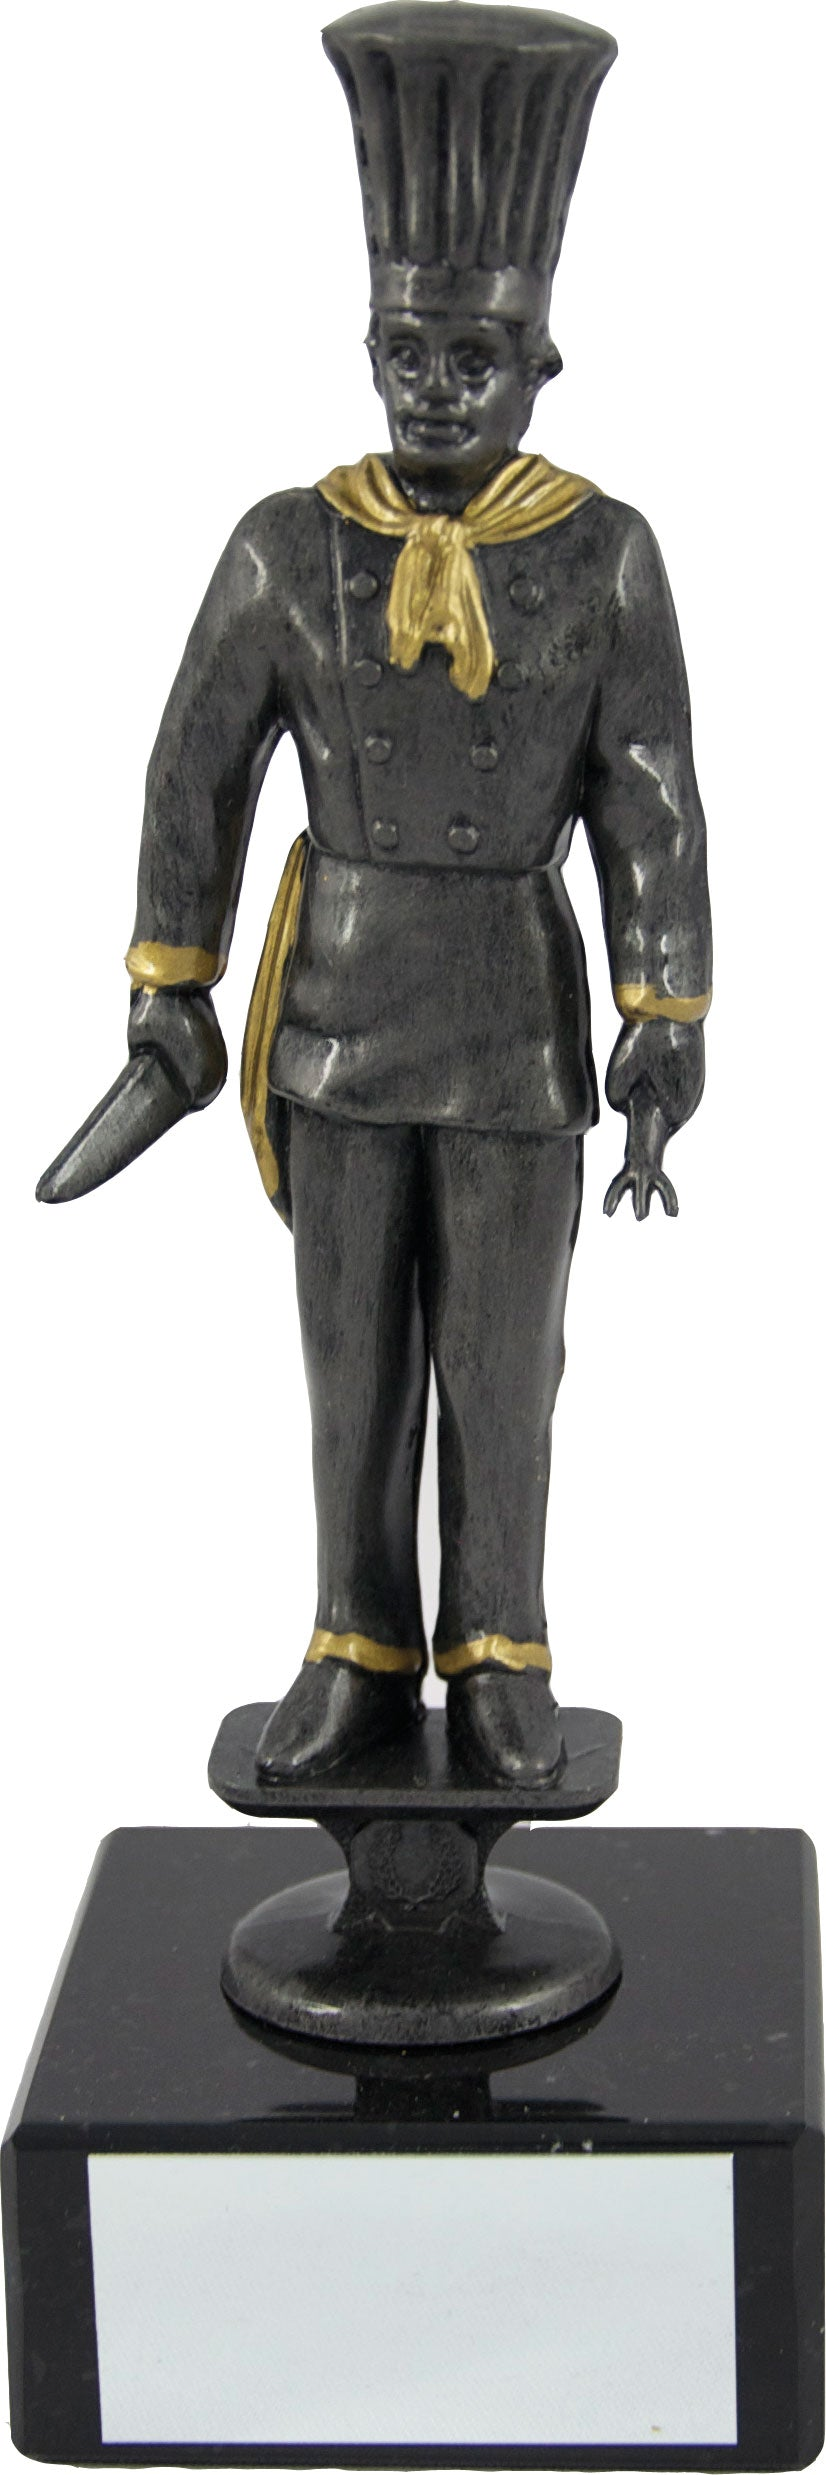 Black/Gold Chef Trophy